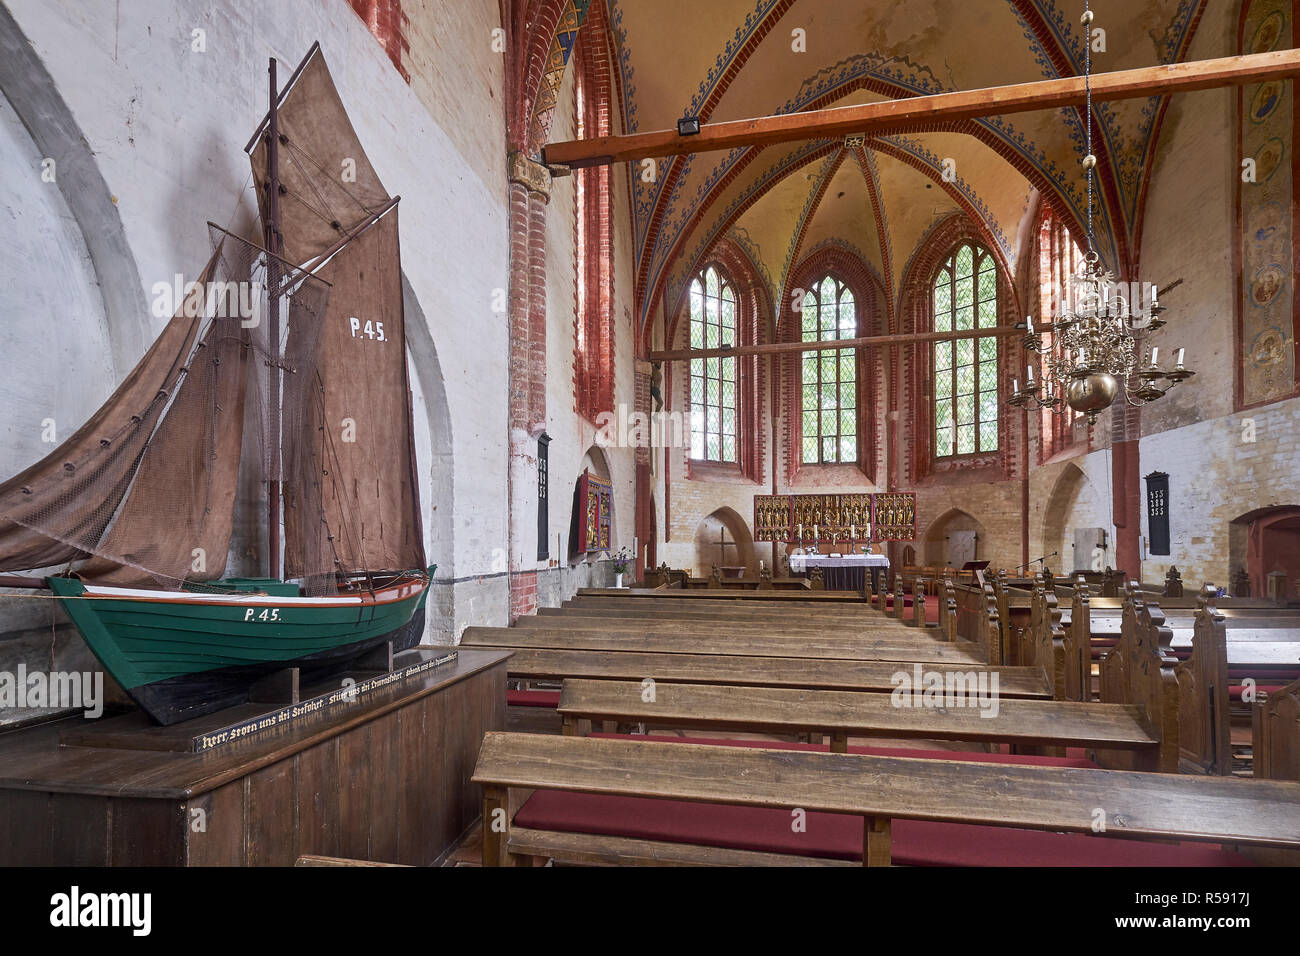 Inside view of the church with Zeesenboot in Kirchdorf, Insel Poel, Mecklenburg-Vorpommern, Germany - Stock Image